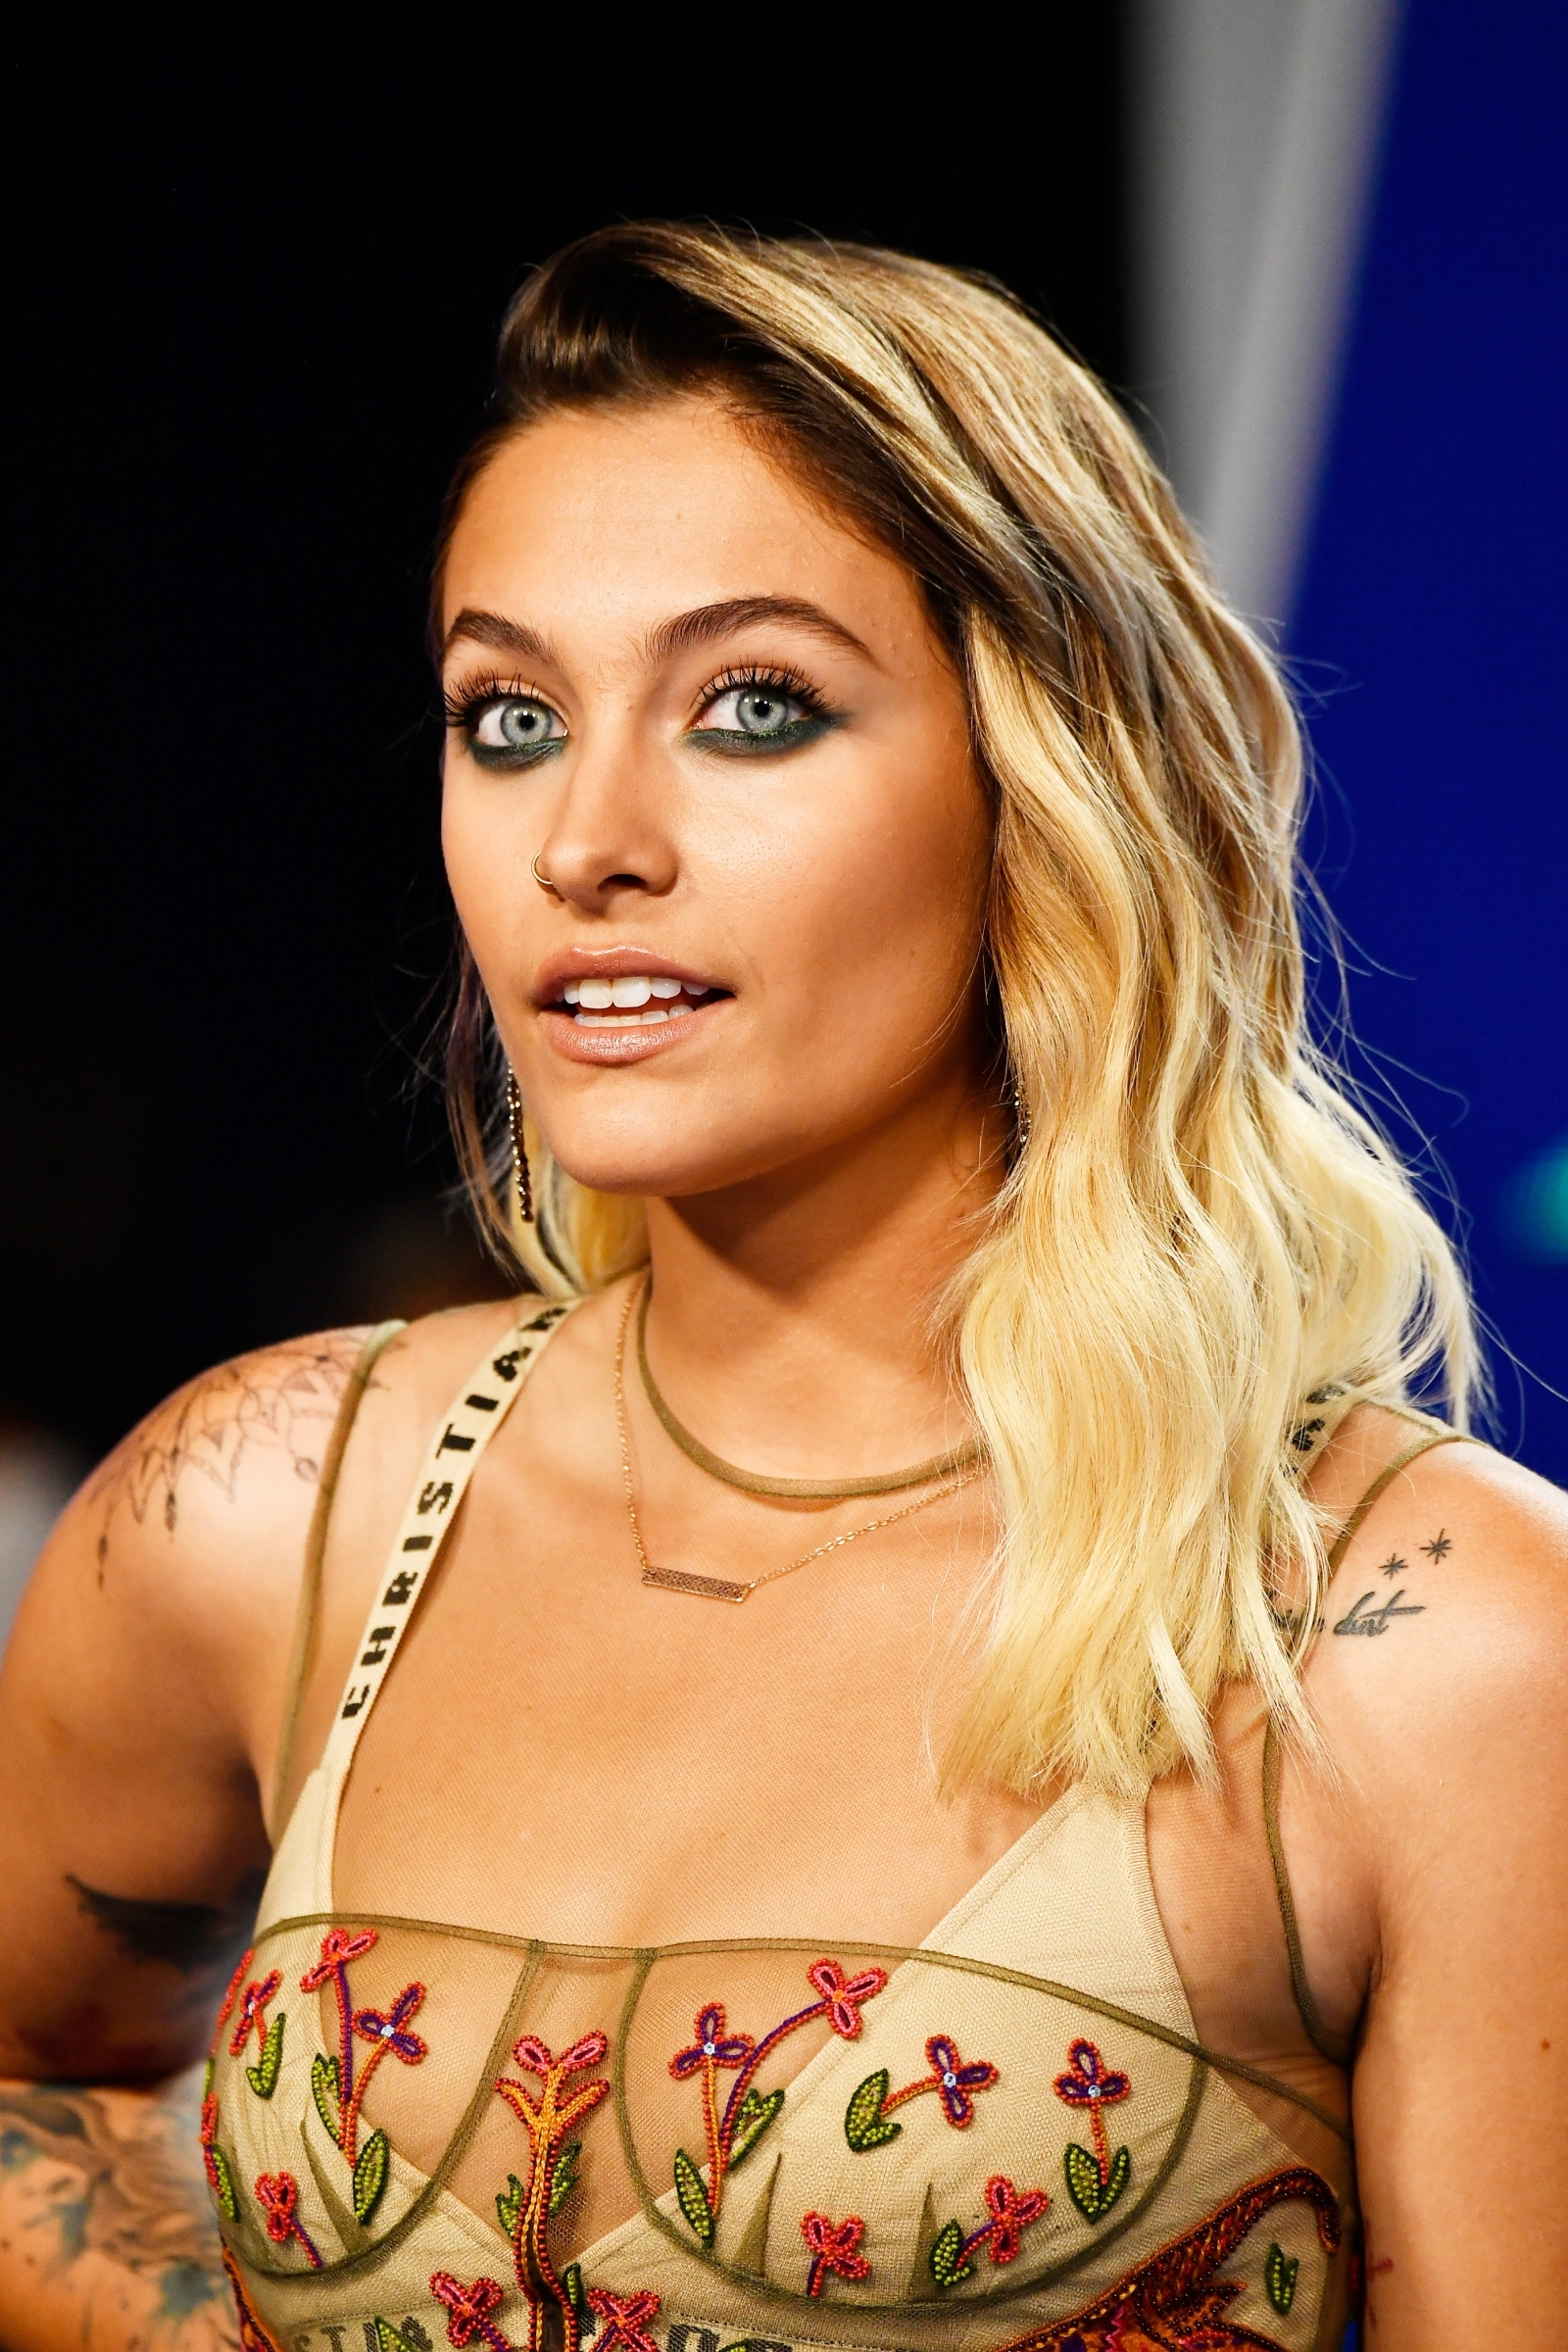 Paris Jackson sends fans wild with eye-popping topless pics: 'If every morning could be like this'